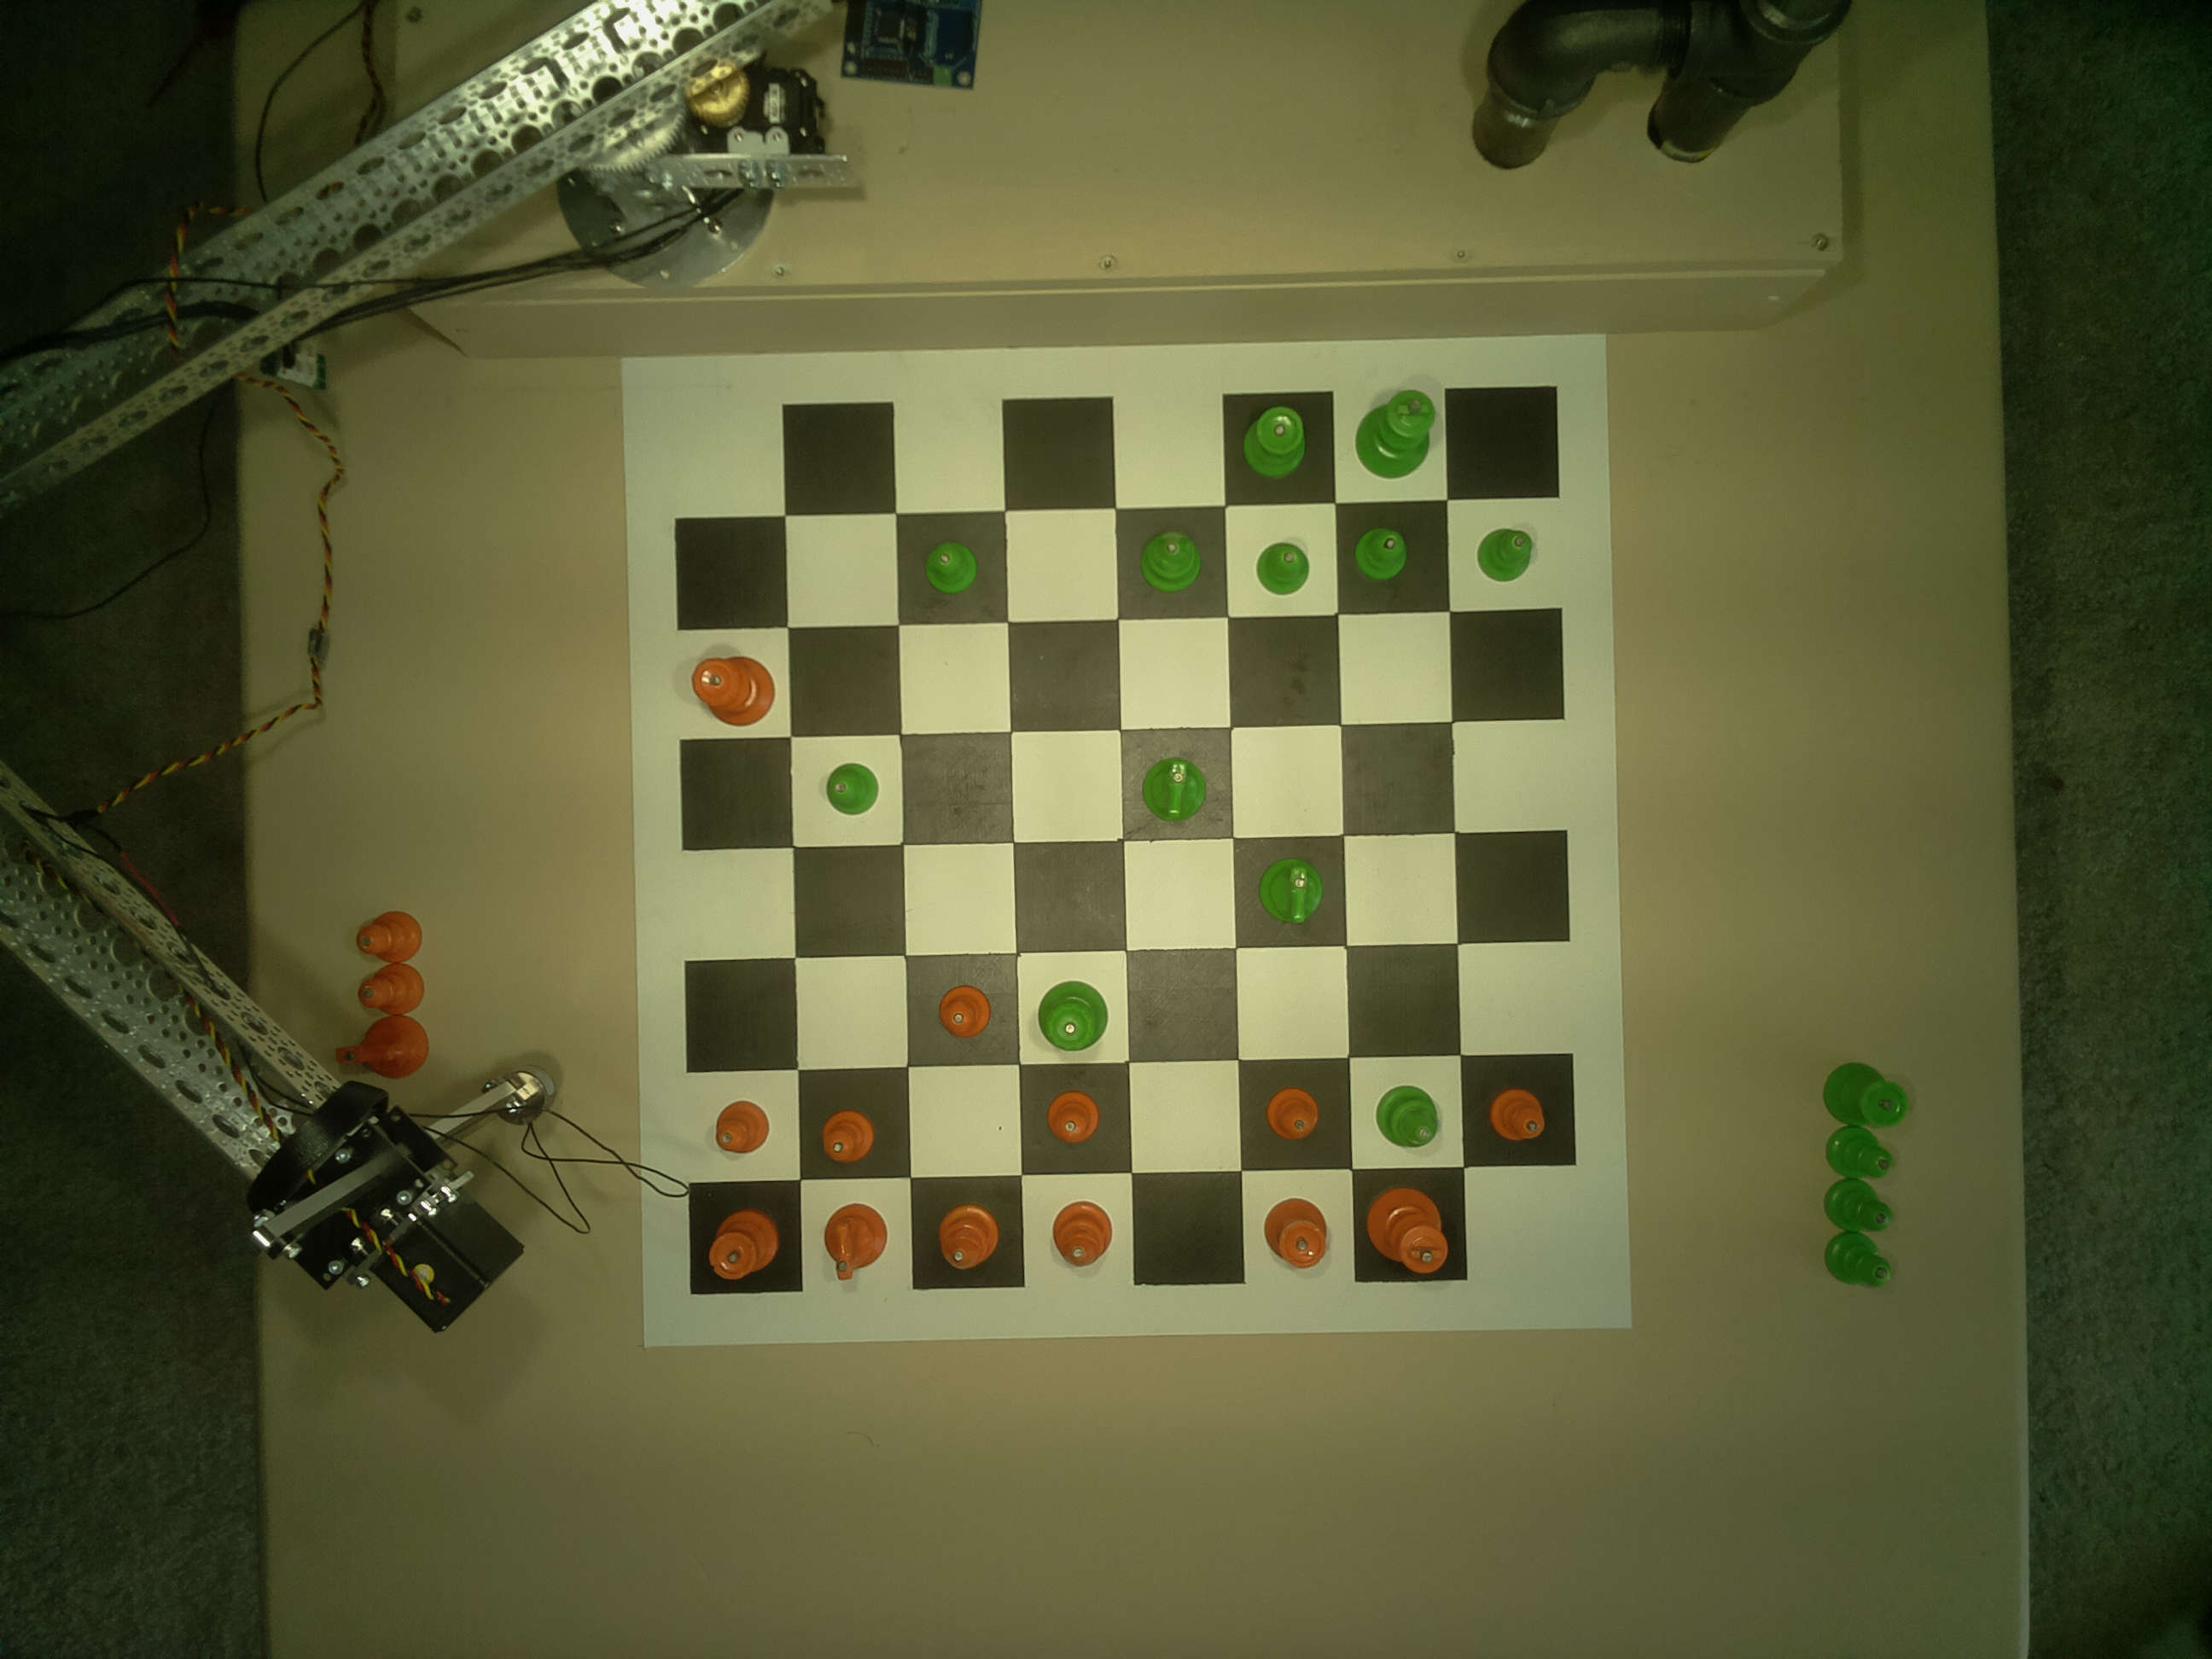 A raw image of the chessboard on table, captured from the camera.